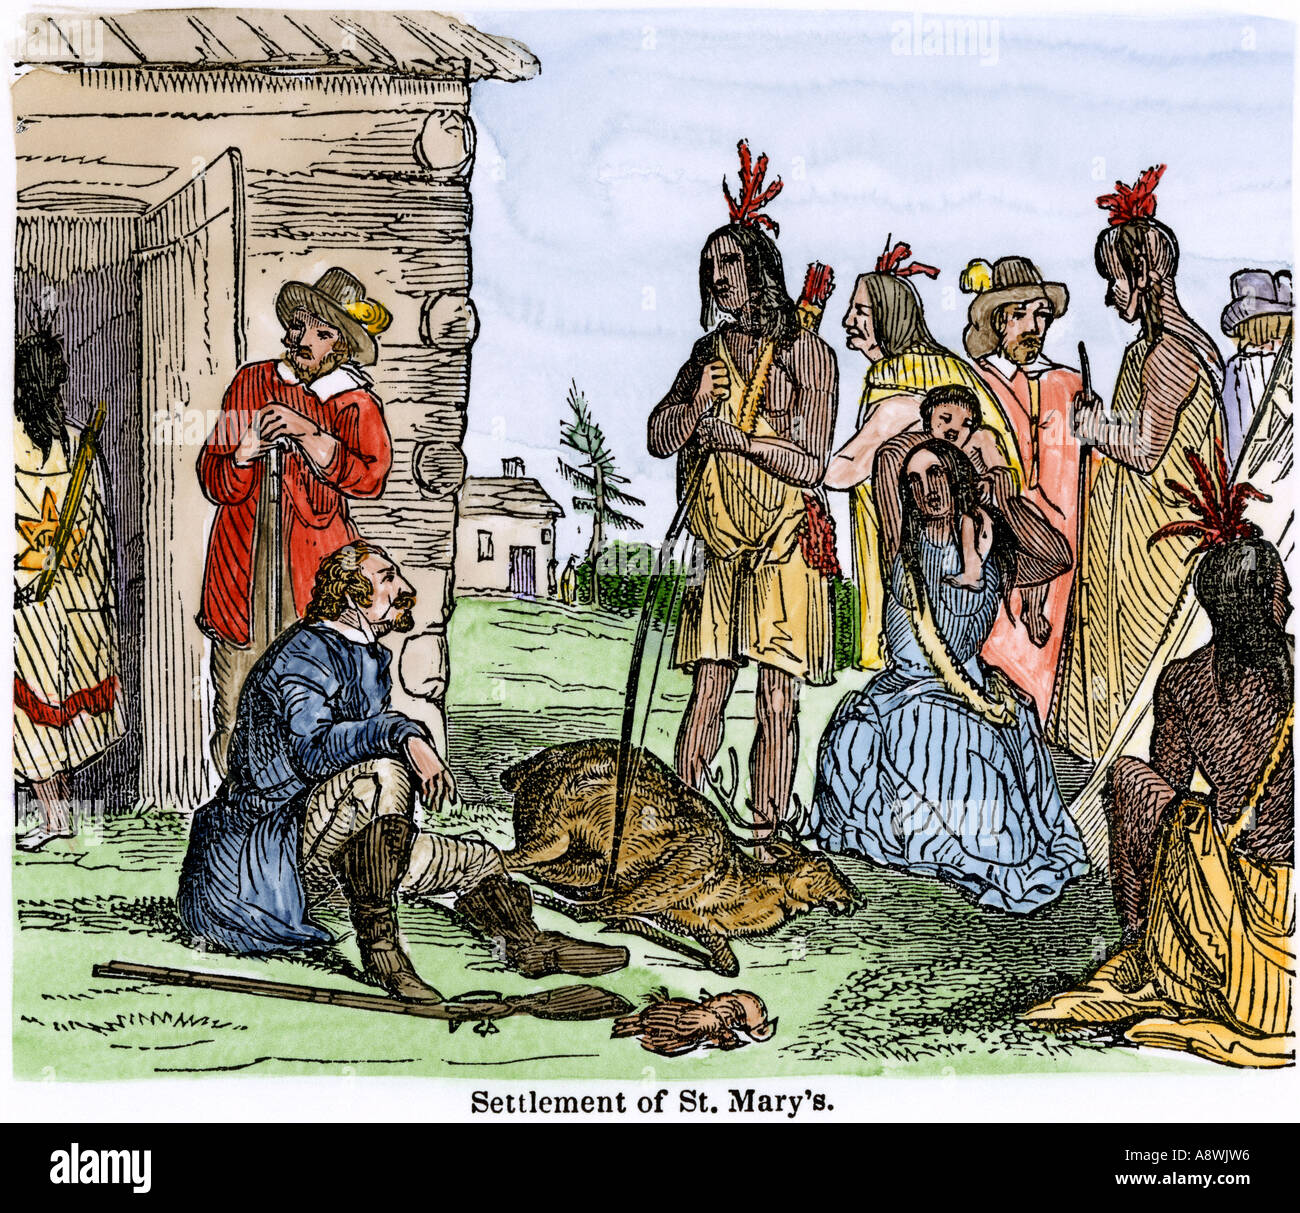 St Marys a trading post settlement in Maryland 1600s. Hand-colored woodcut - Stock Image